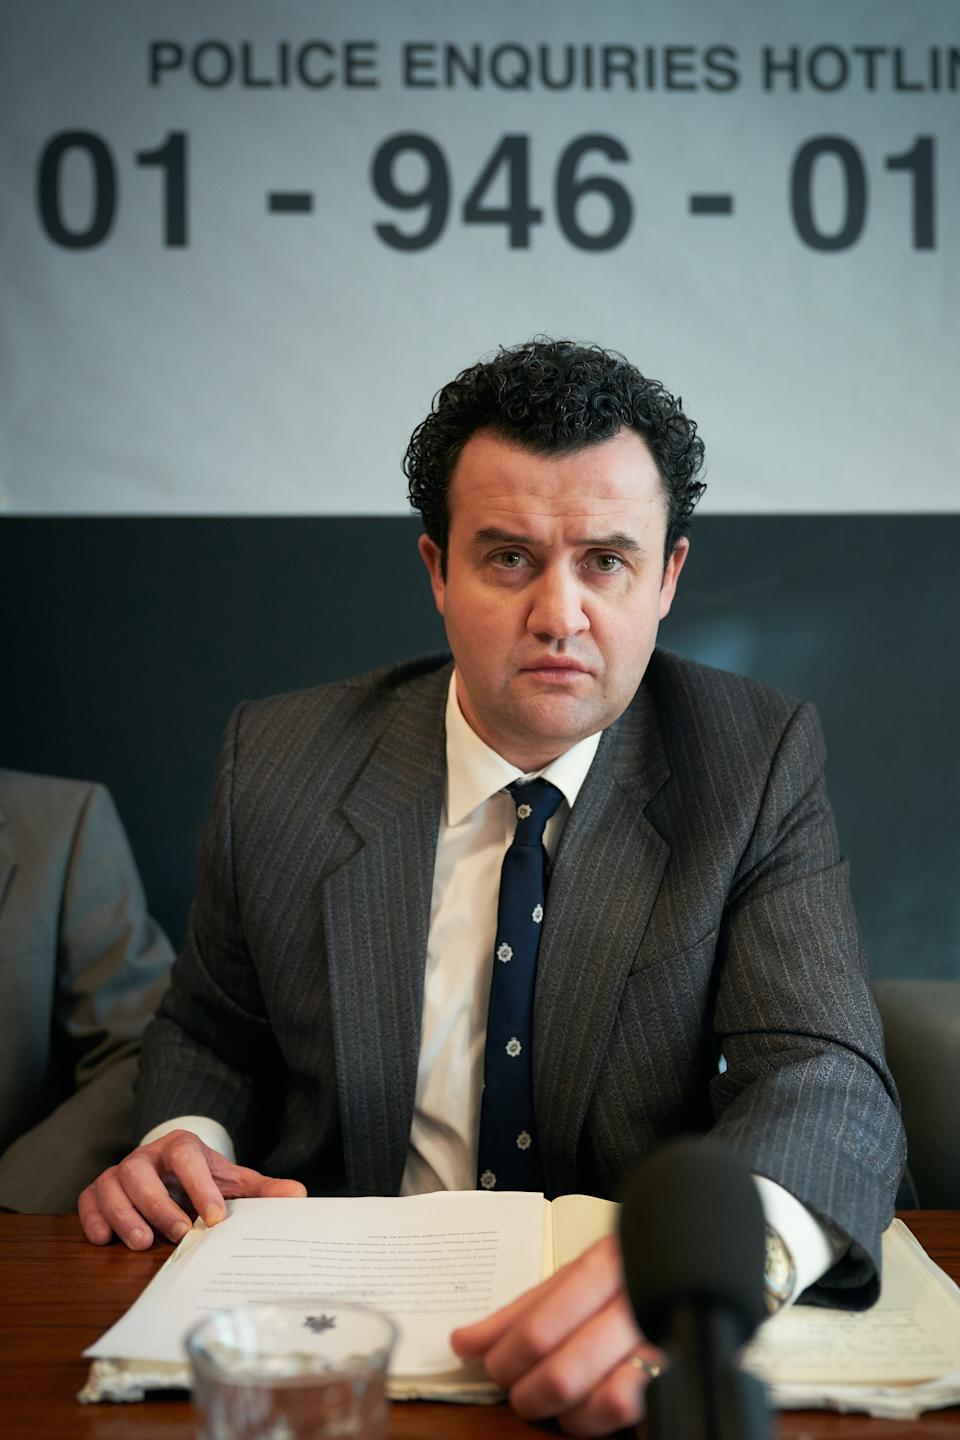 Daniel Mays as Detective Peter Jay meeting the press to appeal to the public to come to the police if they have any information on Nilsen. (ITV)